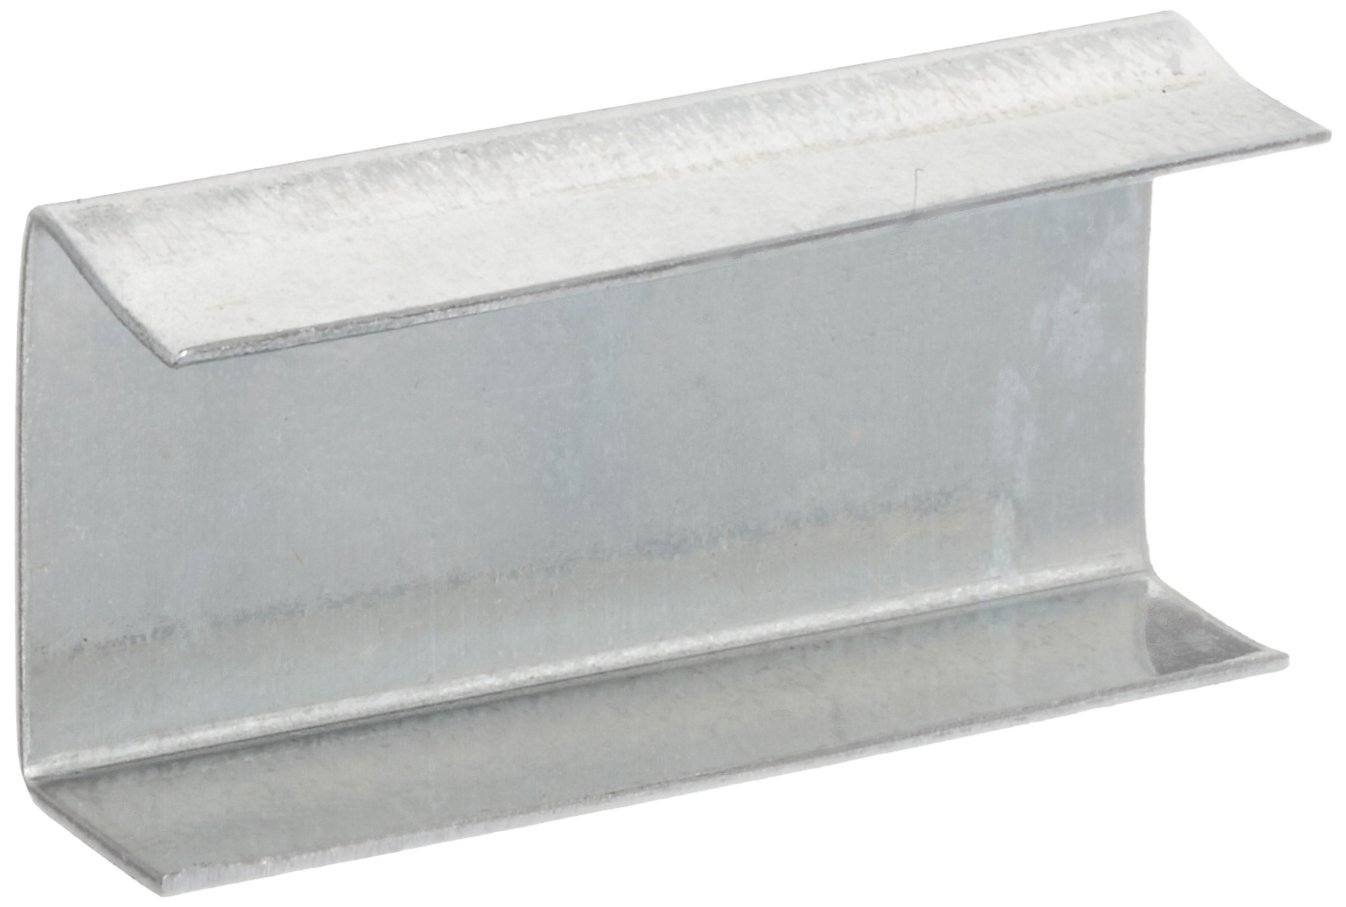 PAC Strapping OST48C 1/2'' Open Seals for Steel Strapping (Pack of 2500) by PAC Strapping Products